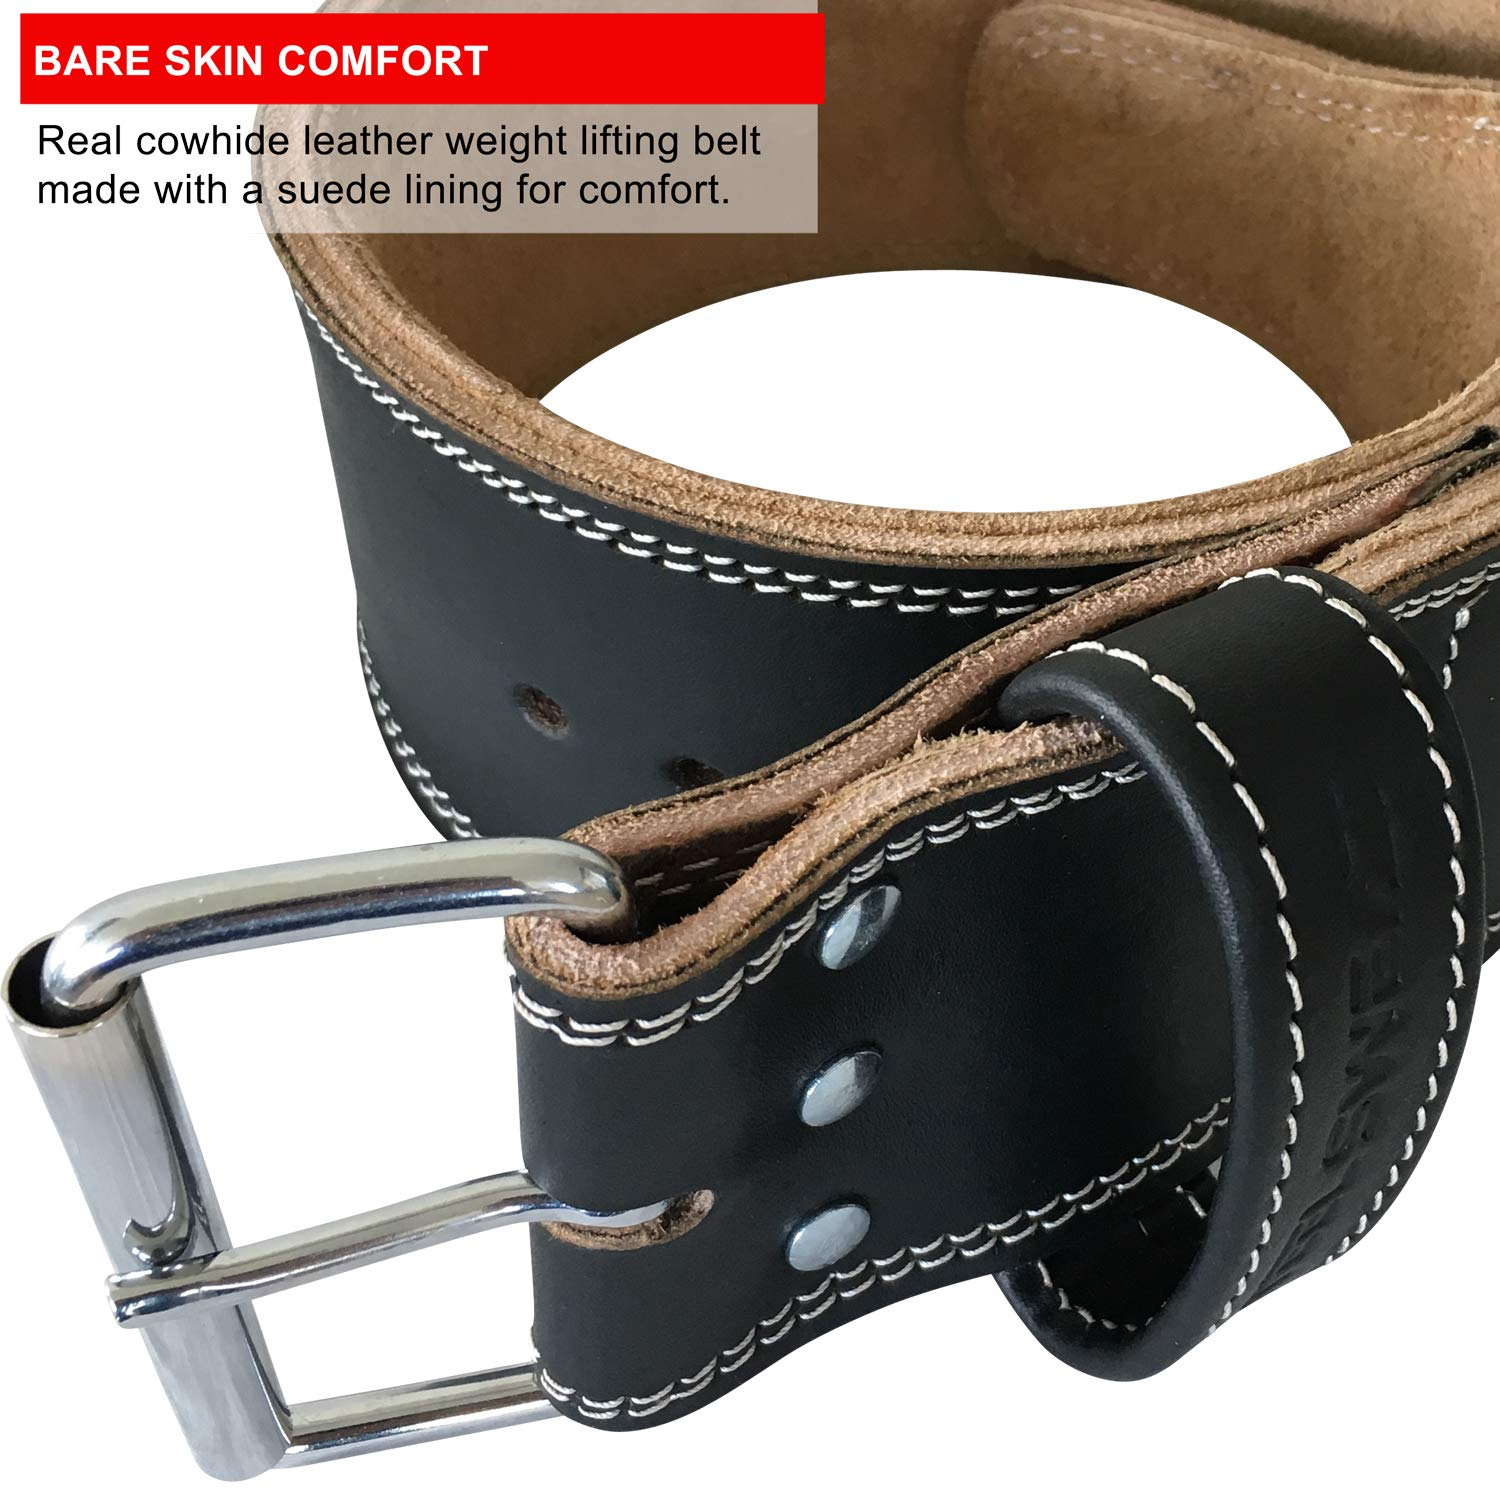 Steel Sweat Weight Lifting Belt - 4 Inches Wide by 10mm - Single Prong Powerlifting Belt That's Heavy Duty - Genuine Cowhide Leather - Medium Texus by Steel Sweat (Image #8)